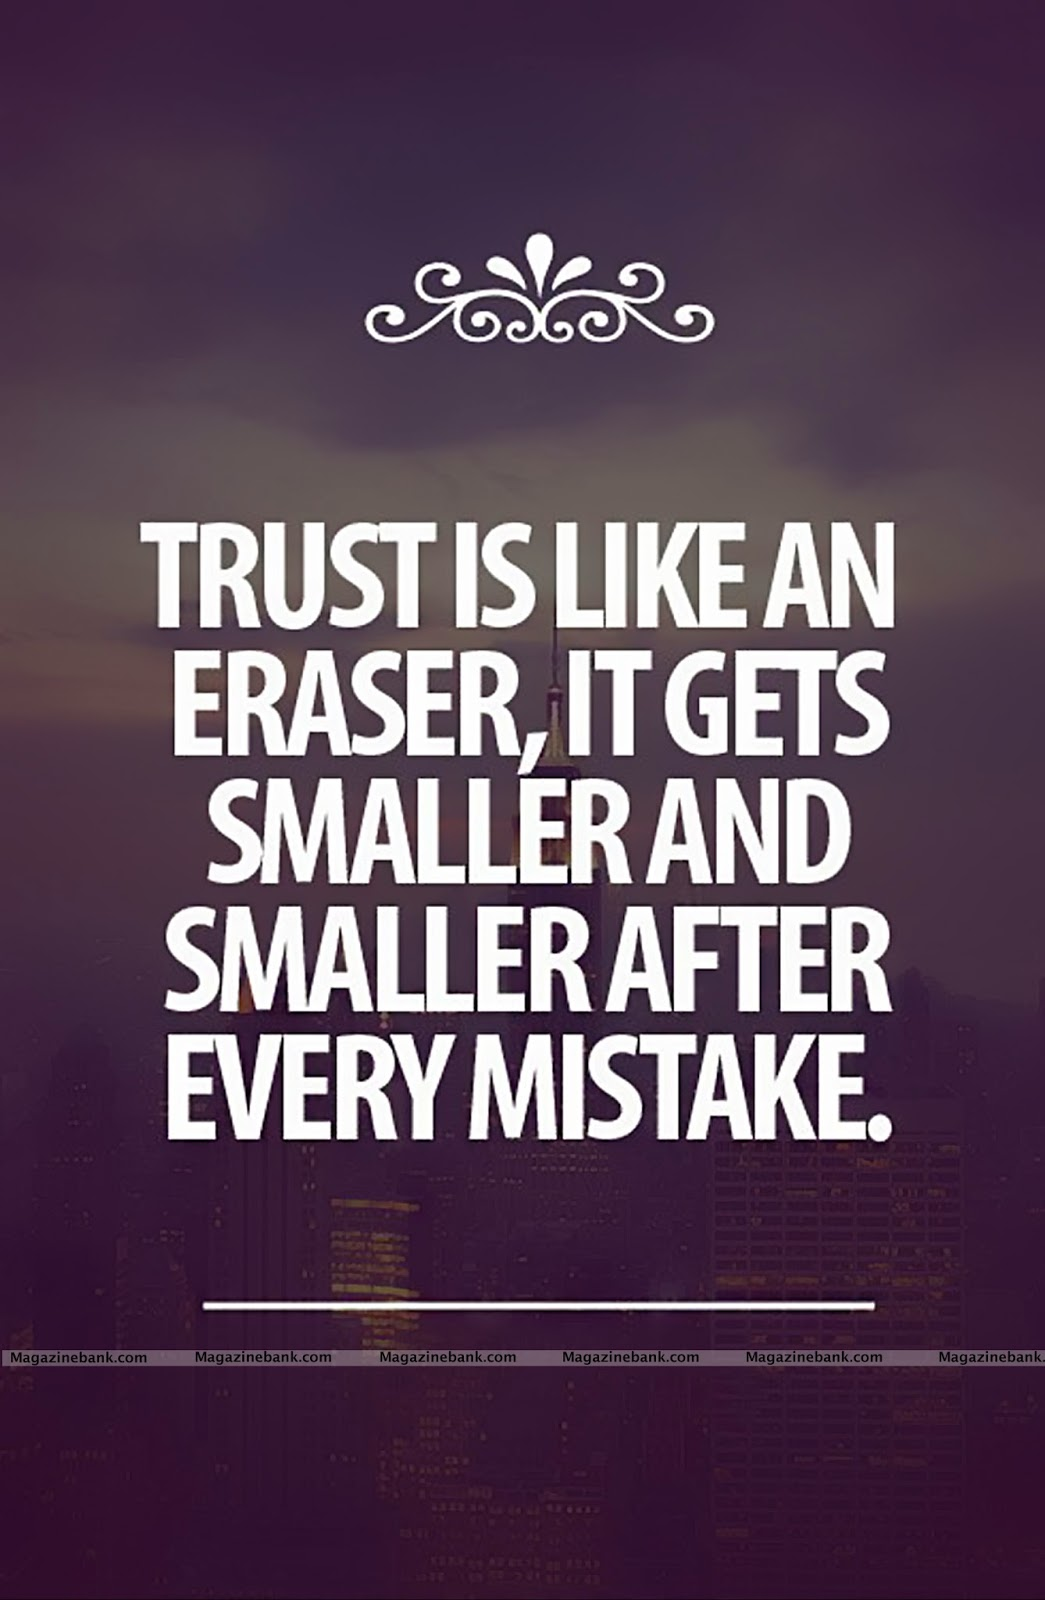 Tagalog Quotes About Friendship Quotes About Trust Issues And Lies In A Relationshiop And Love